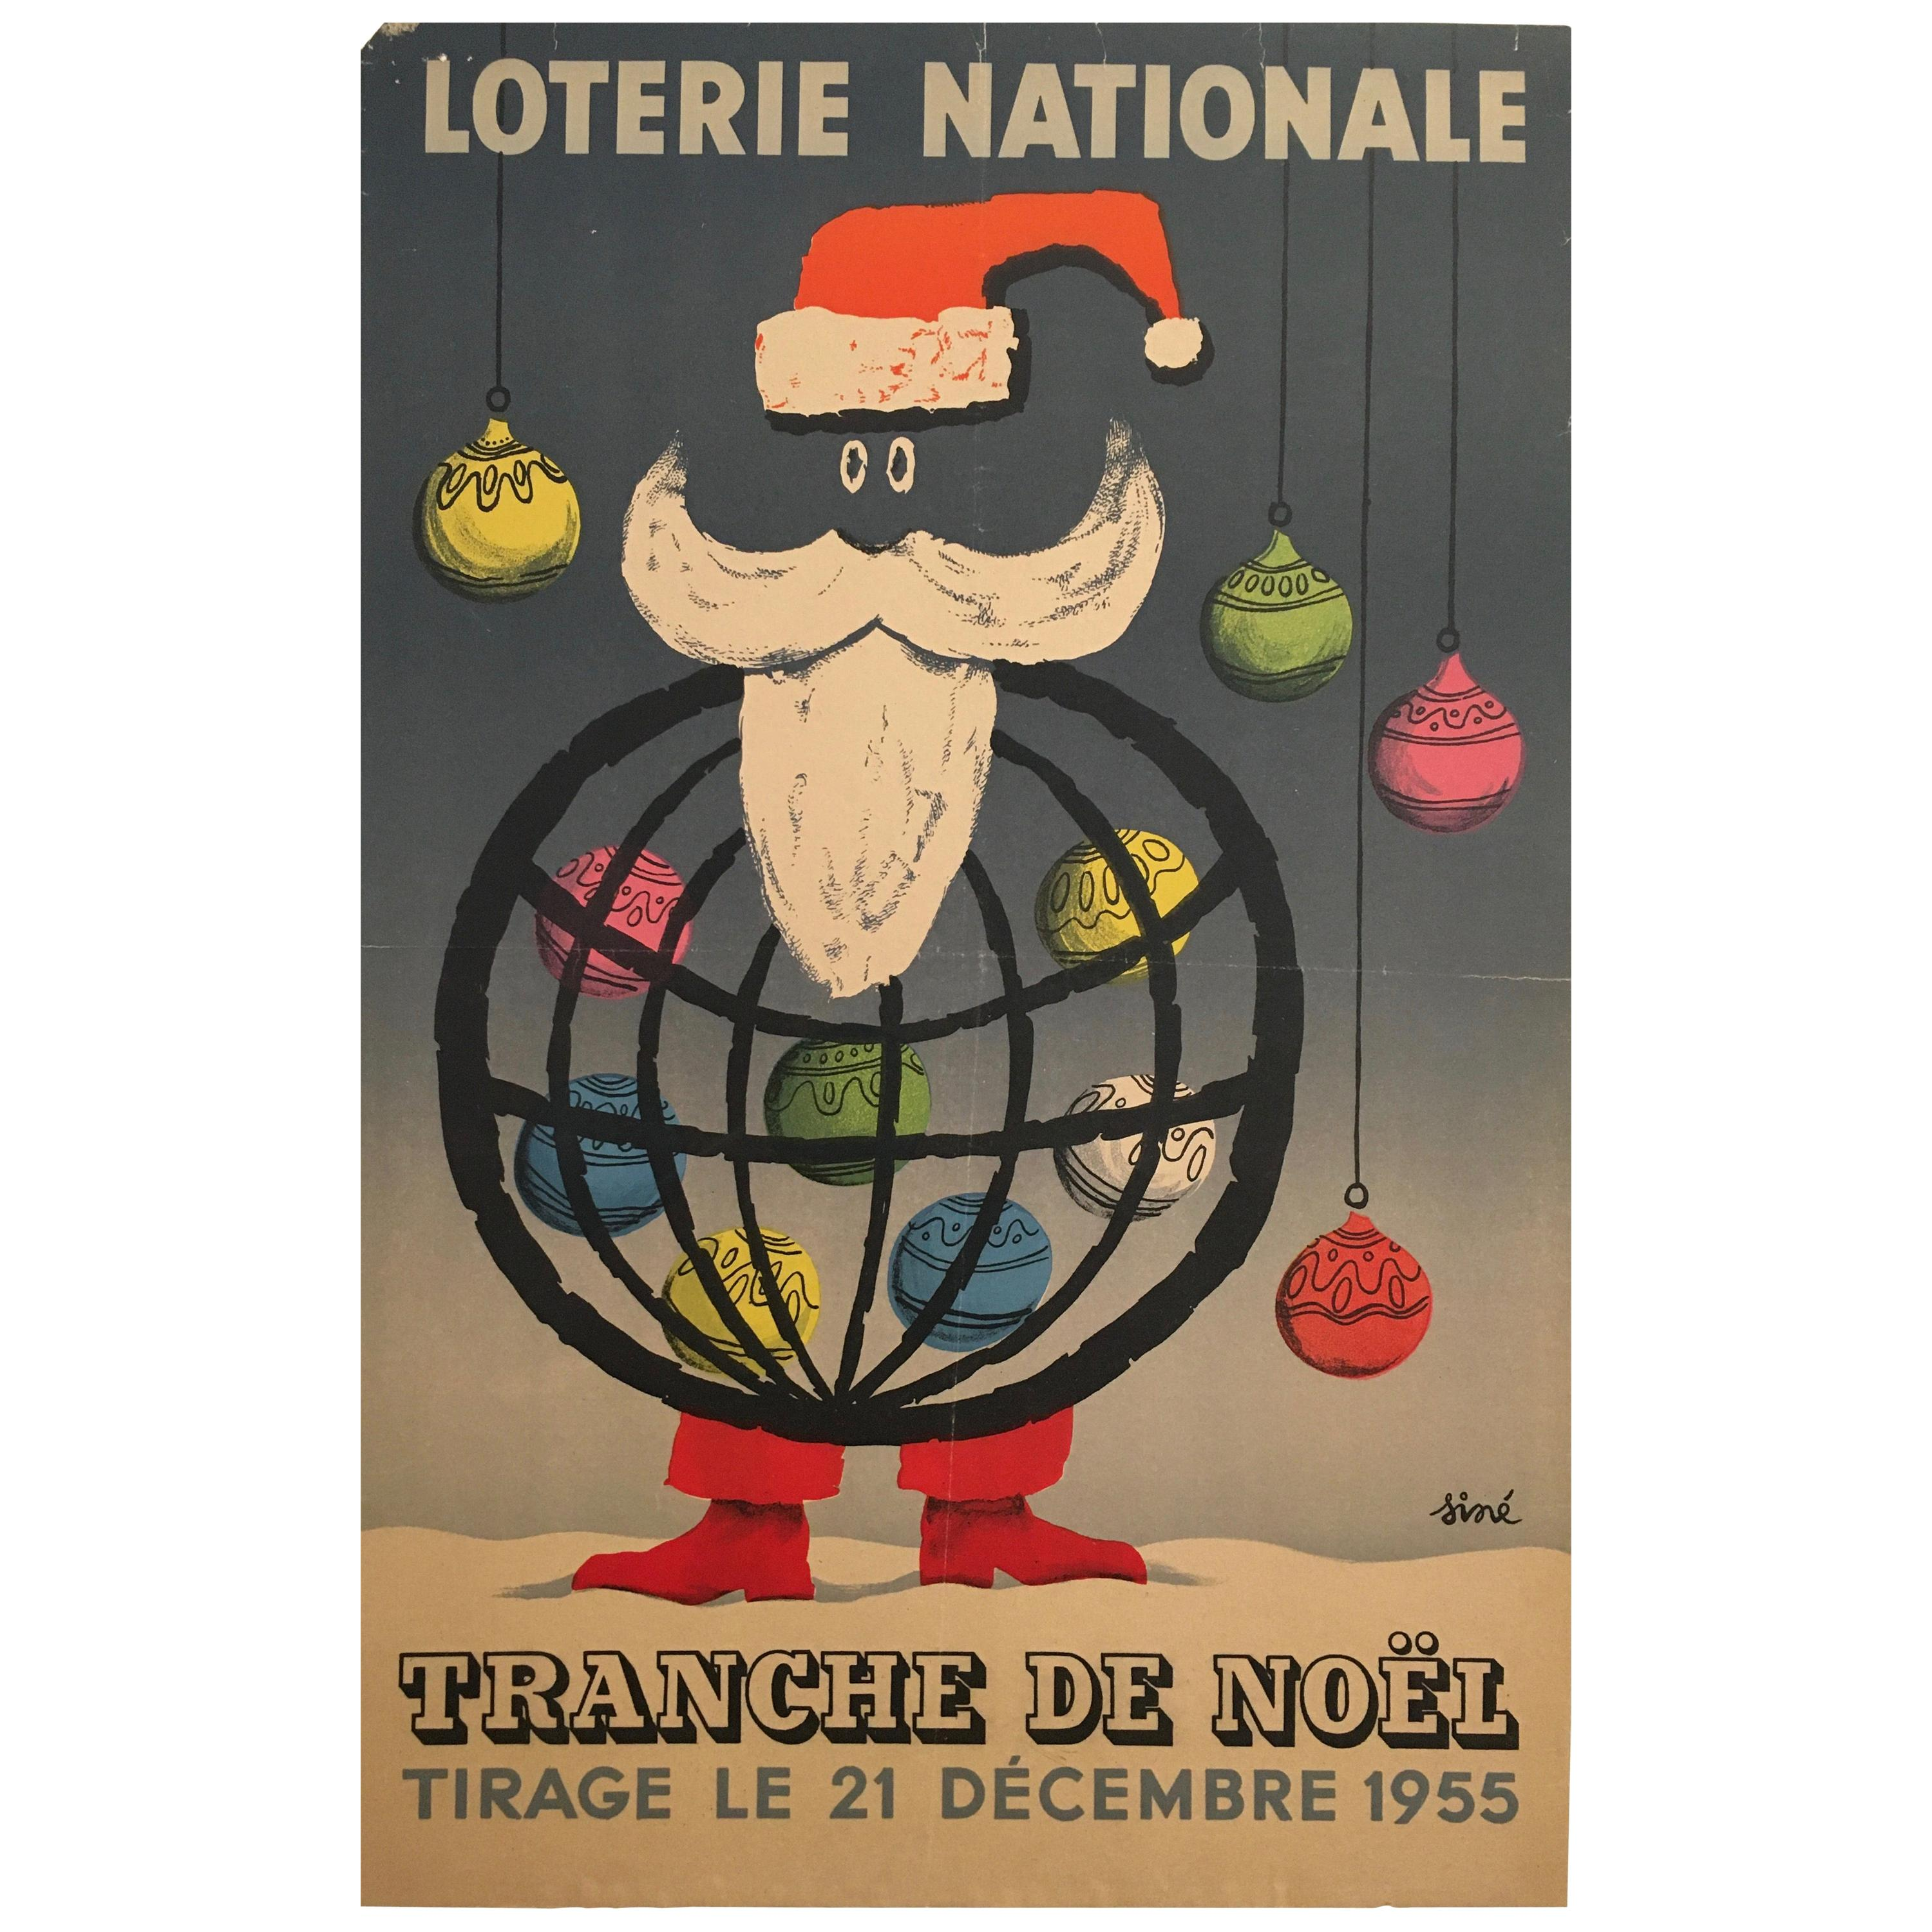 Christmas Themed 'Loterie Nationale', Original Vintage Lithograph Poster, 1955